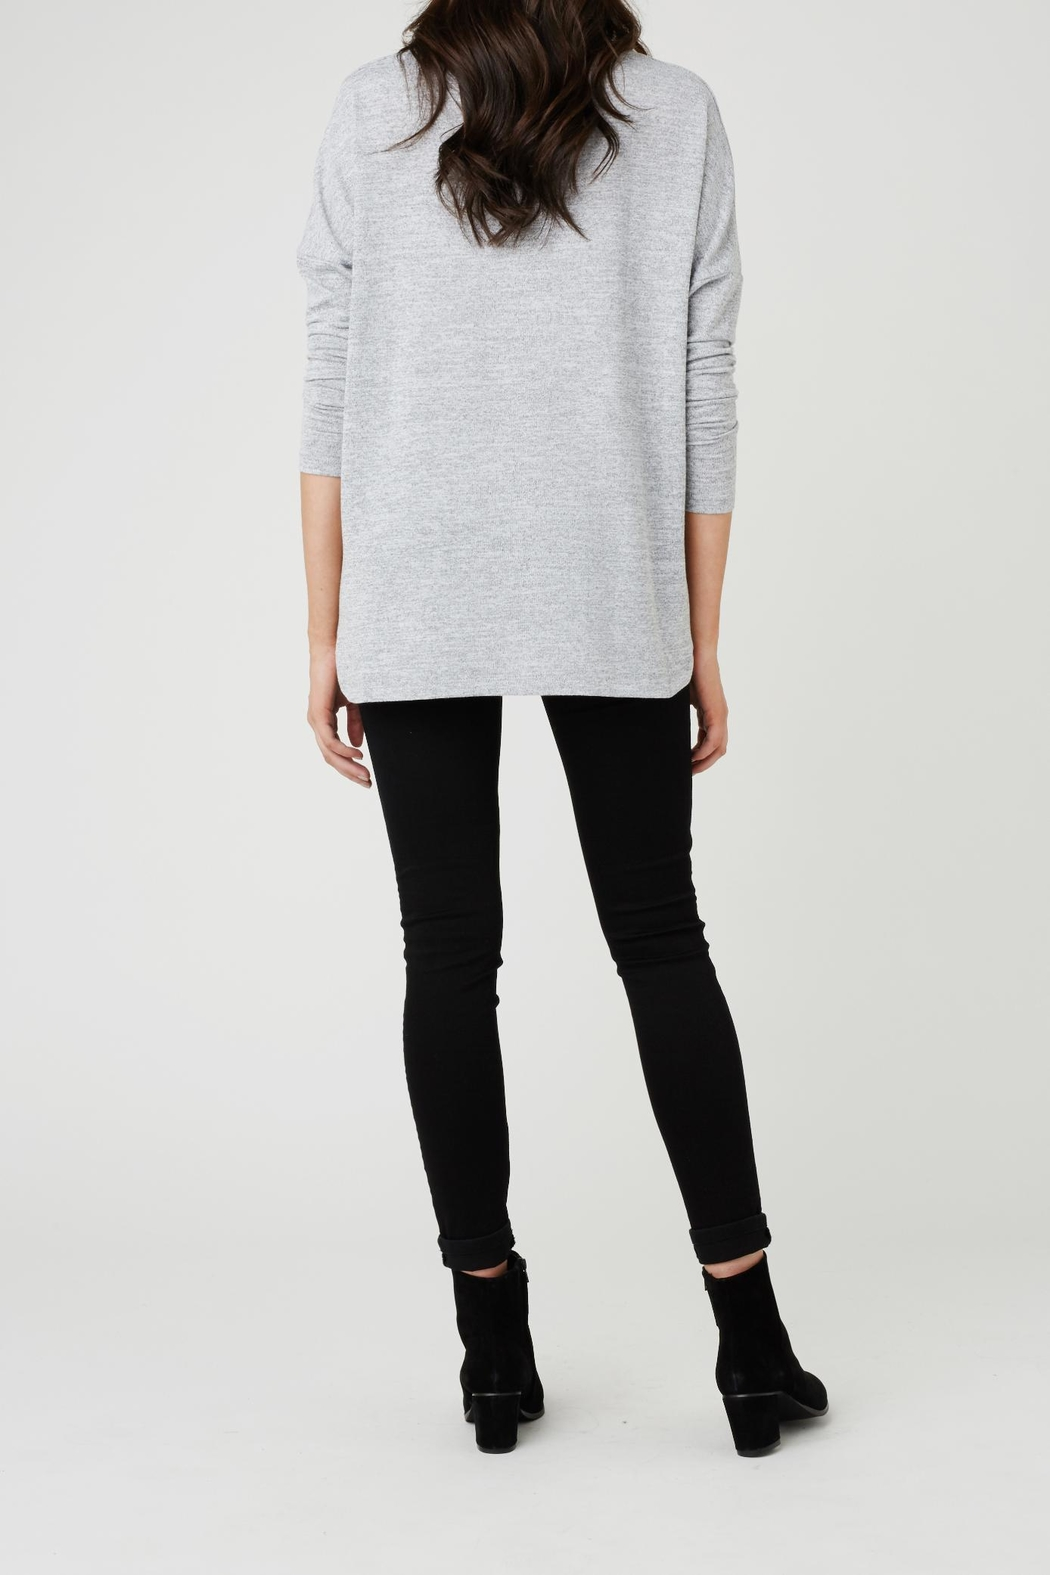 Ripe Maternity Lightweight High-Low Sweater - Front Full Image